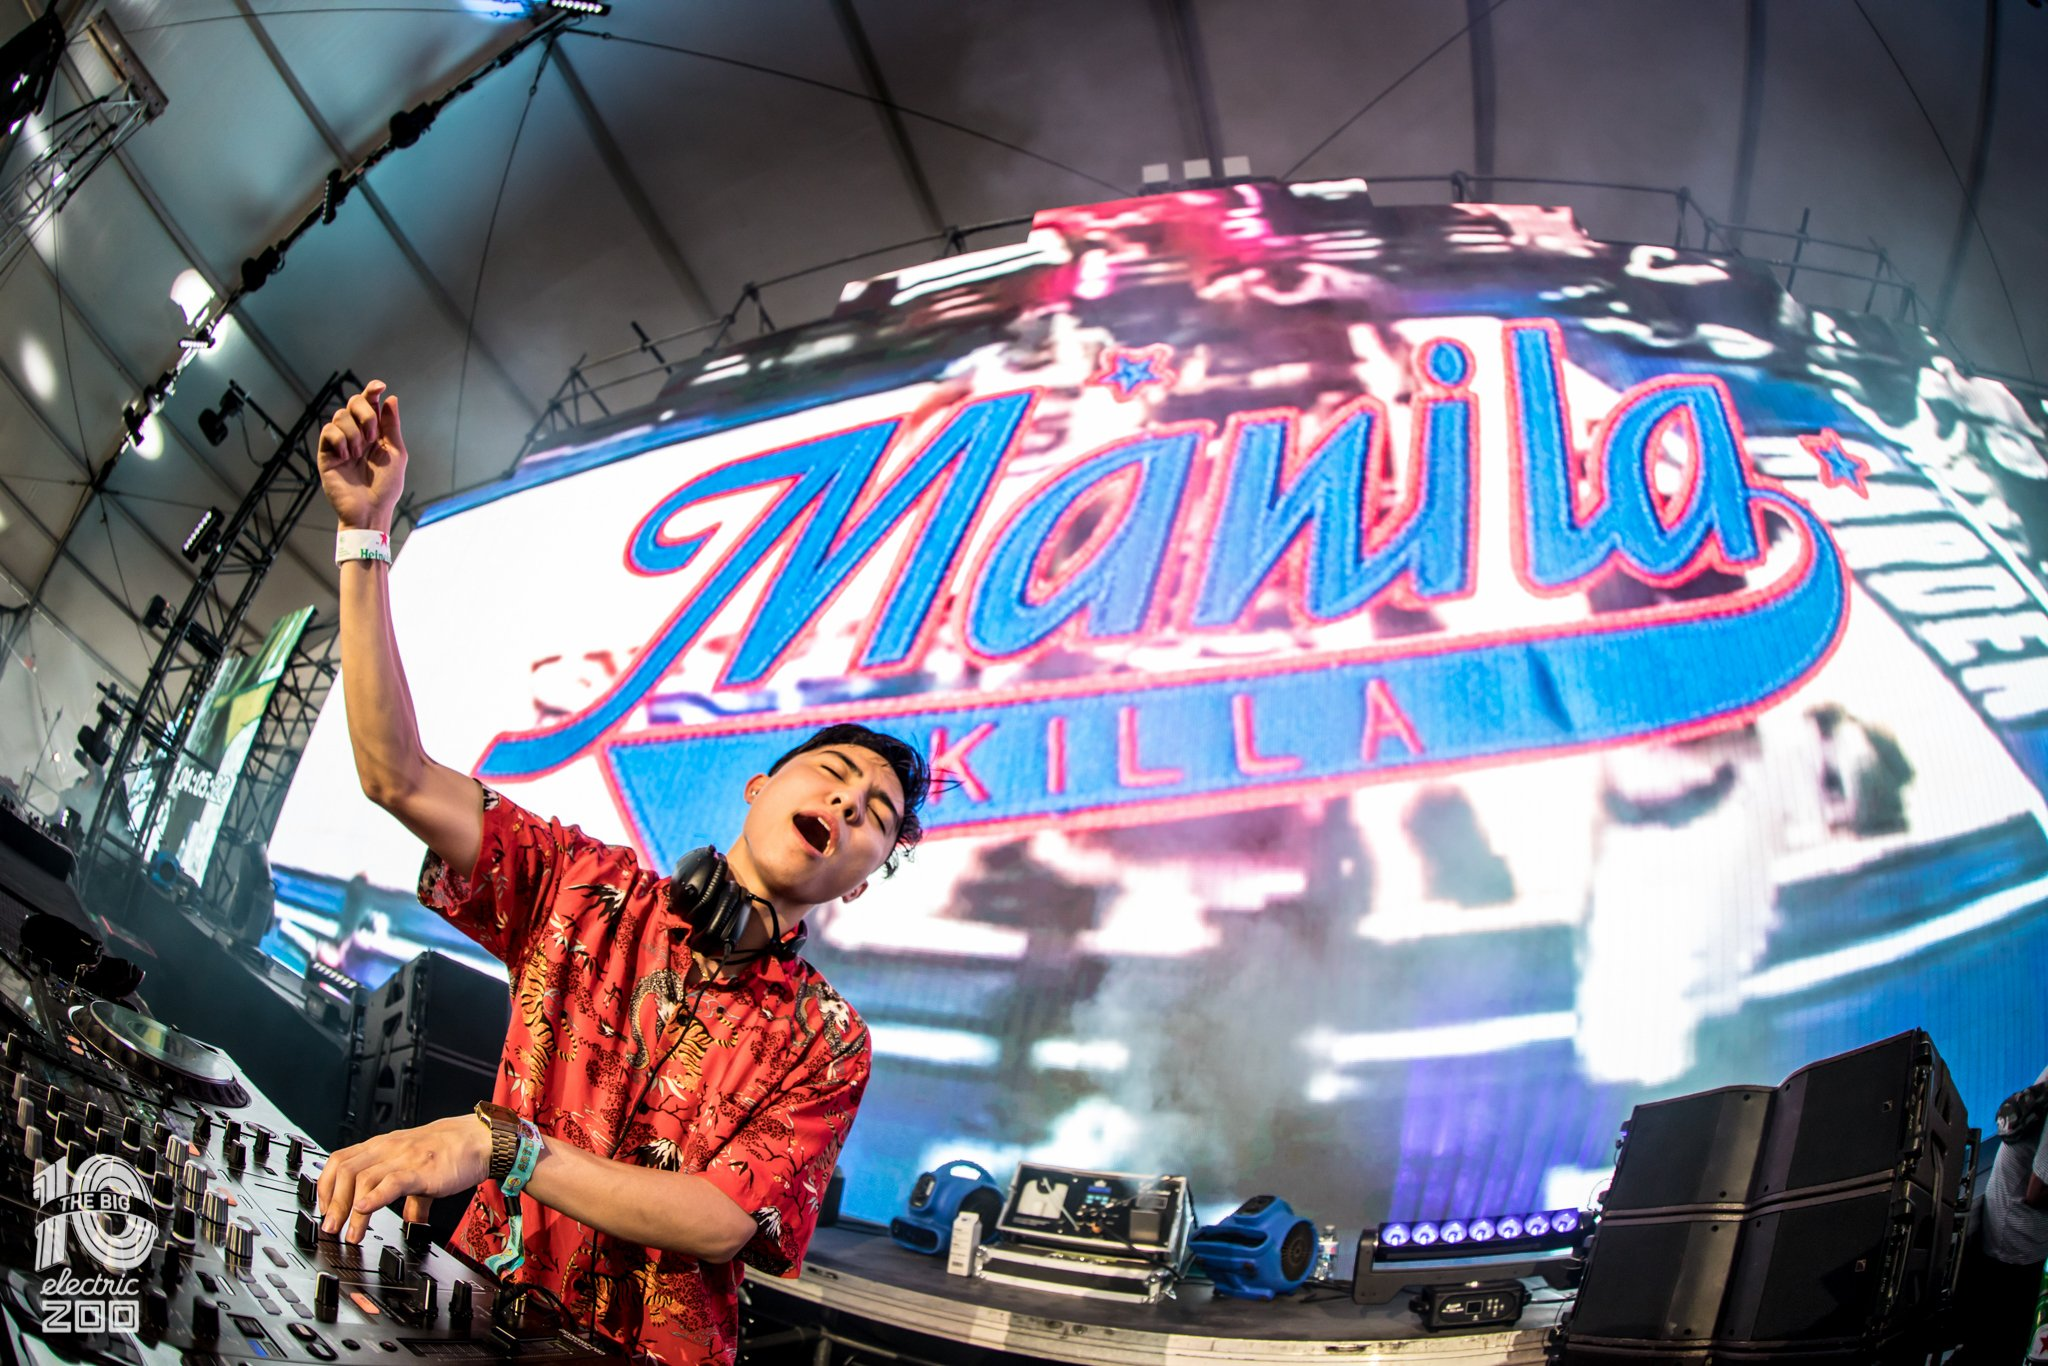 Manila Killa at Lights All Night 2019